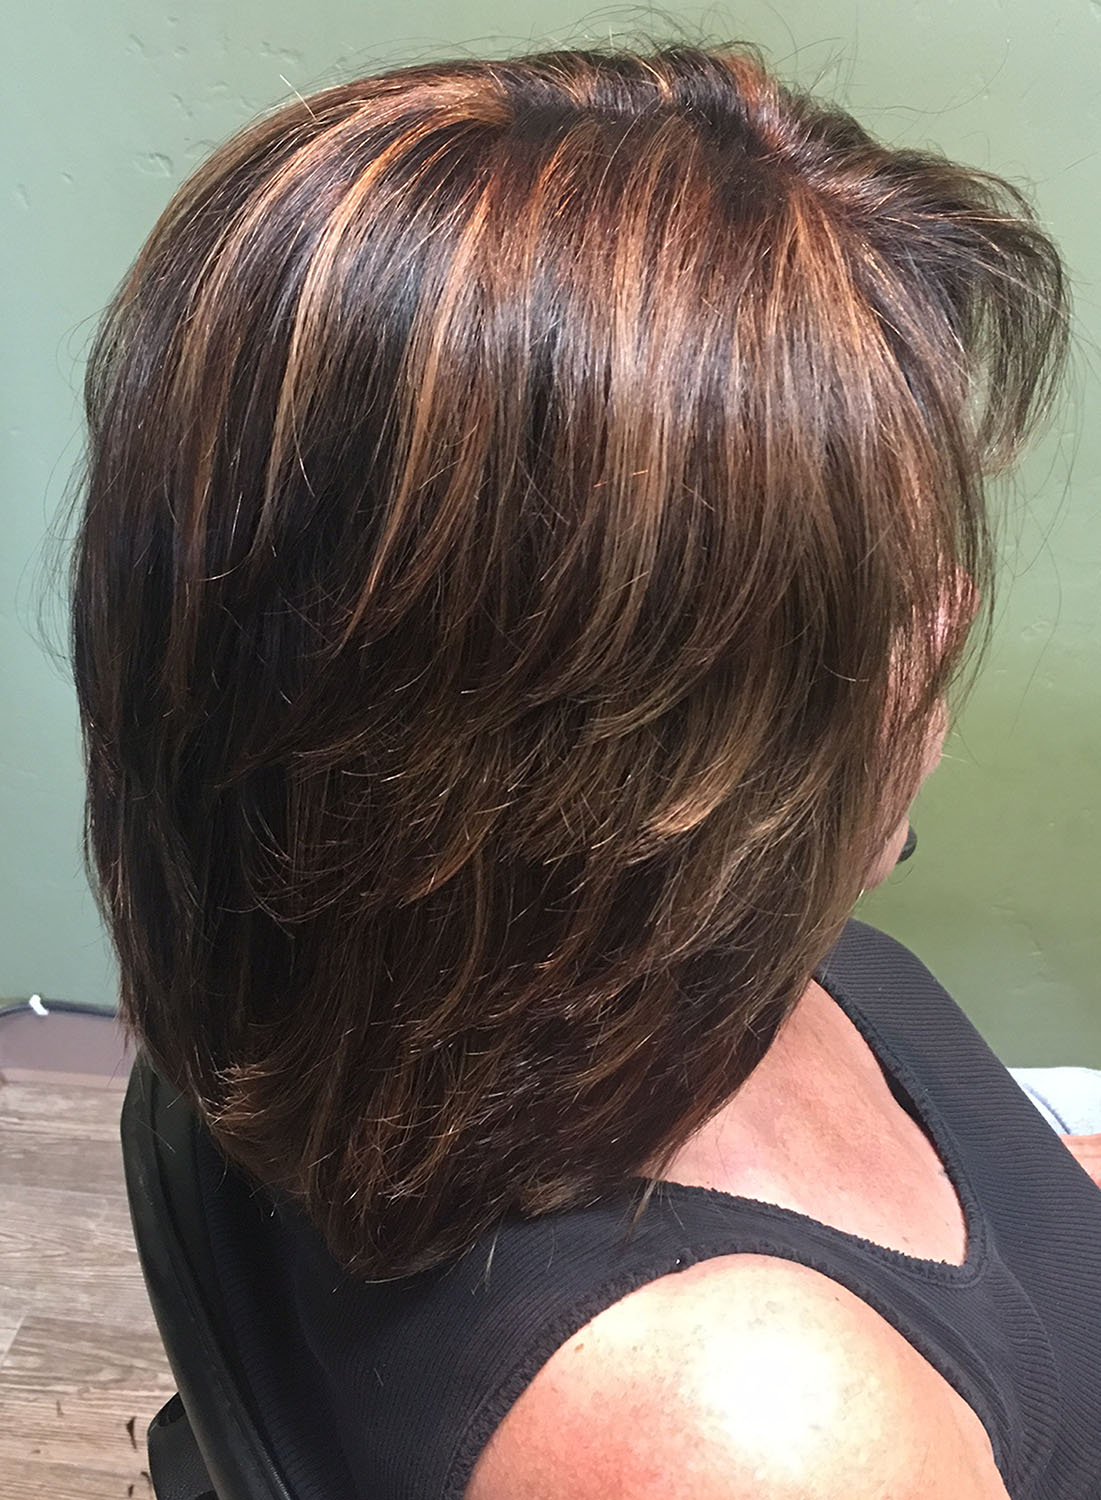 medium hair style ideas many images and pics of all types of haircuts and 3400 | caramel highlights shoulder length hair layers